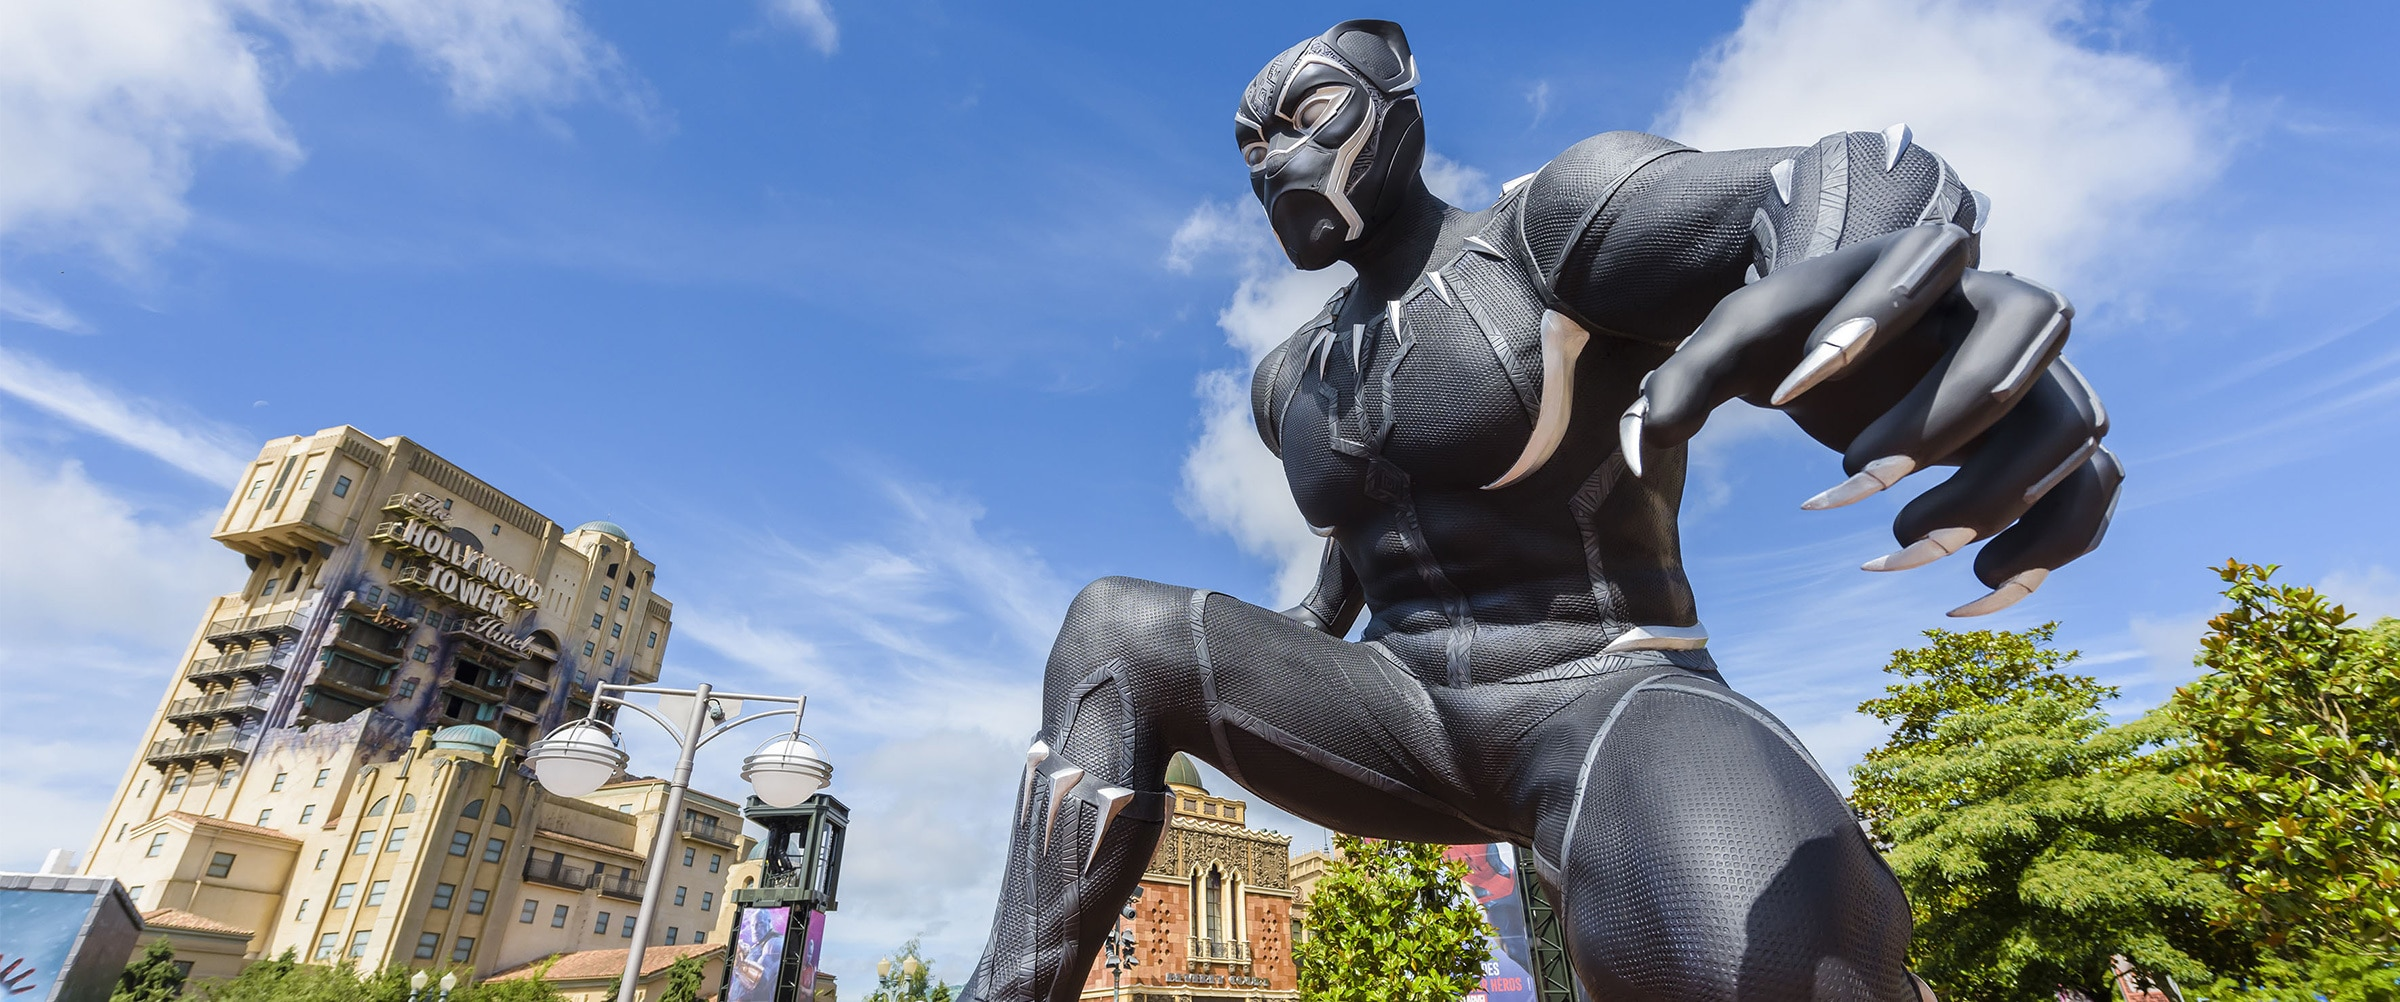 Marvel sommer i Disneyland Paris